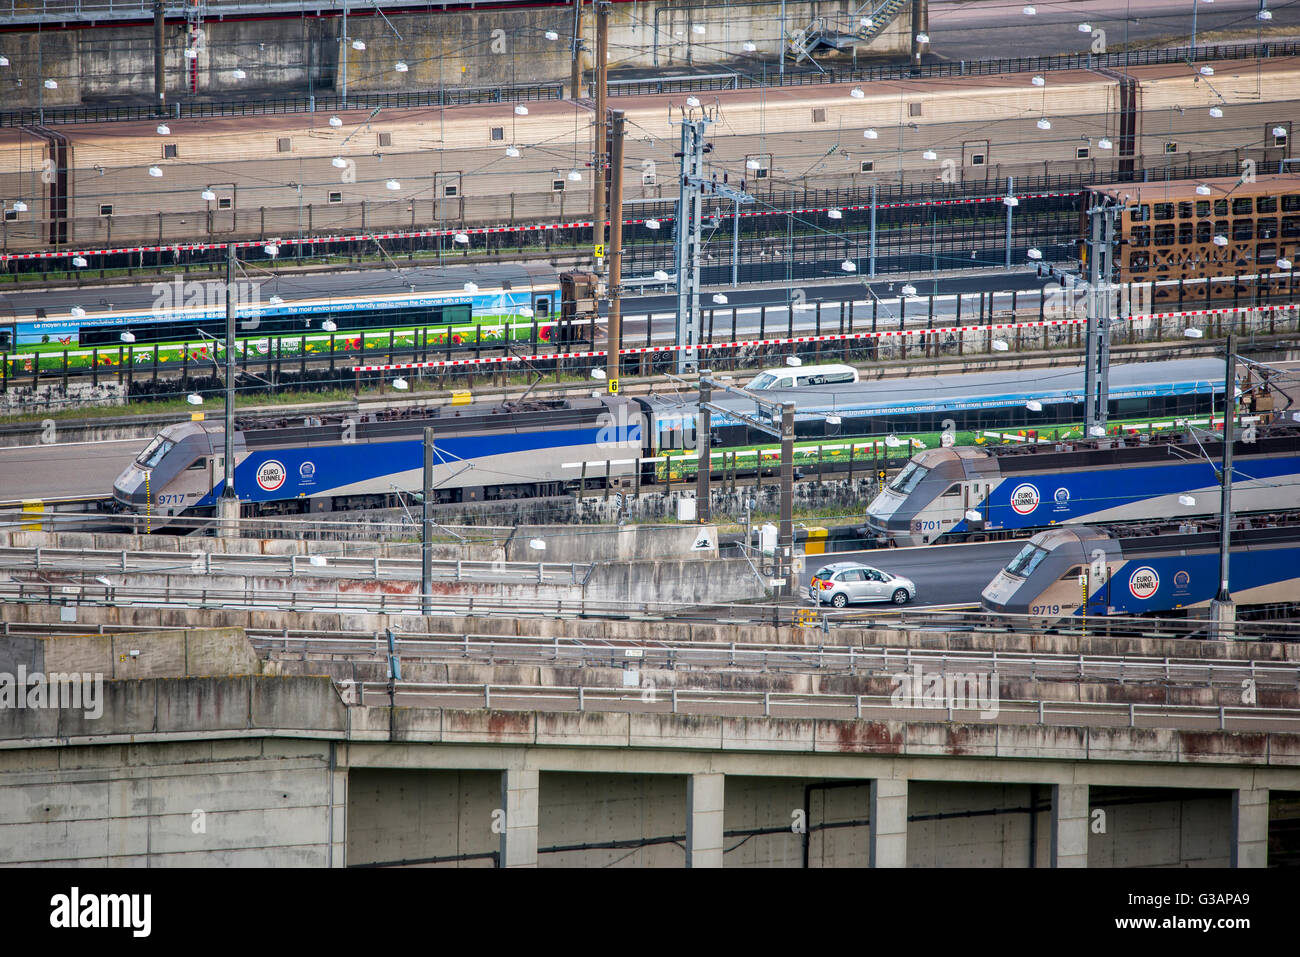 Trains waiting at the Eurotunnel terminal at Folkestone, England. - Stock Image